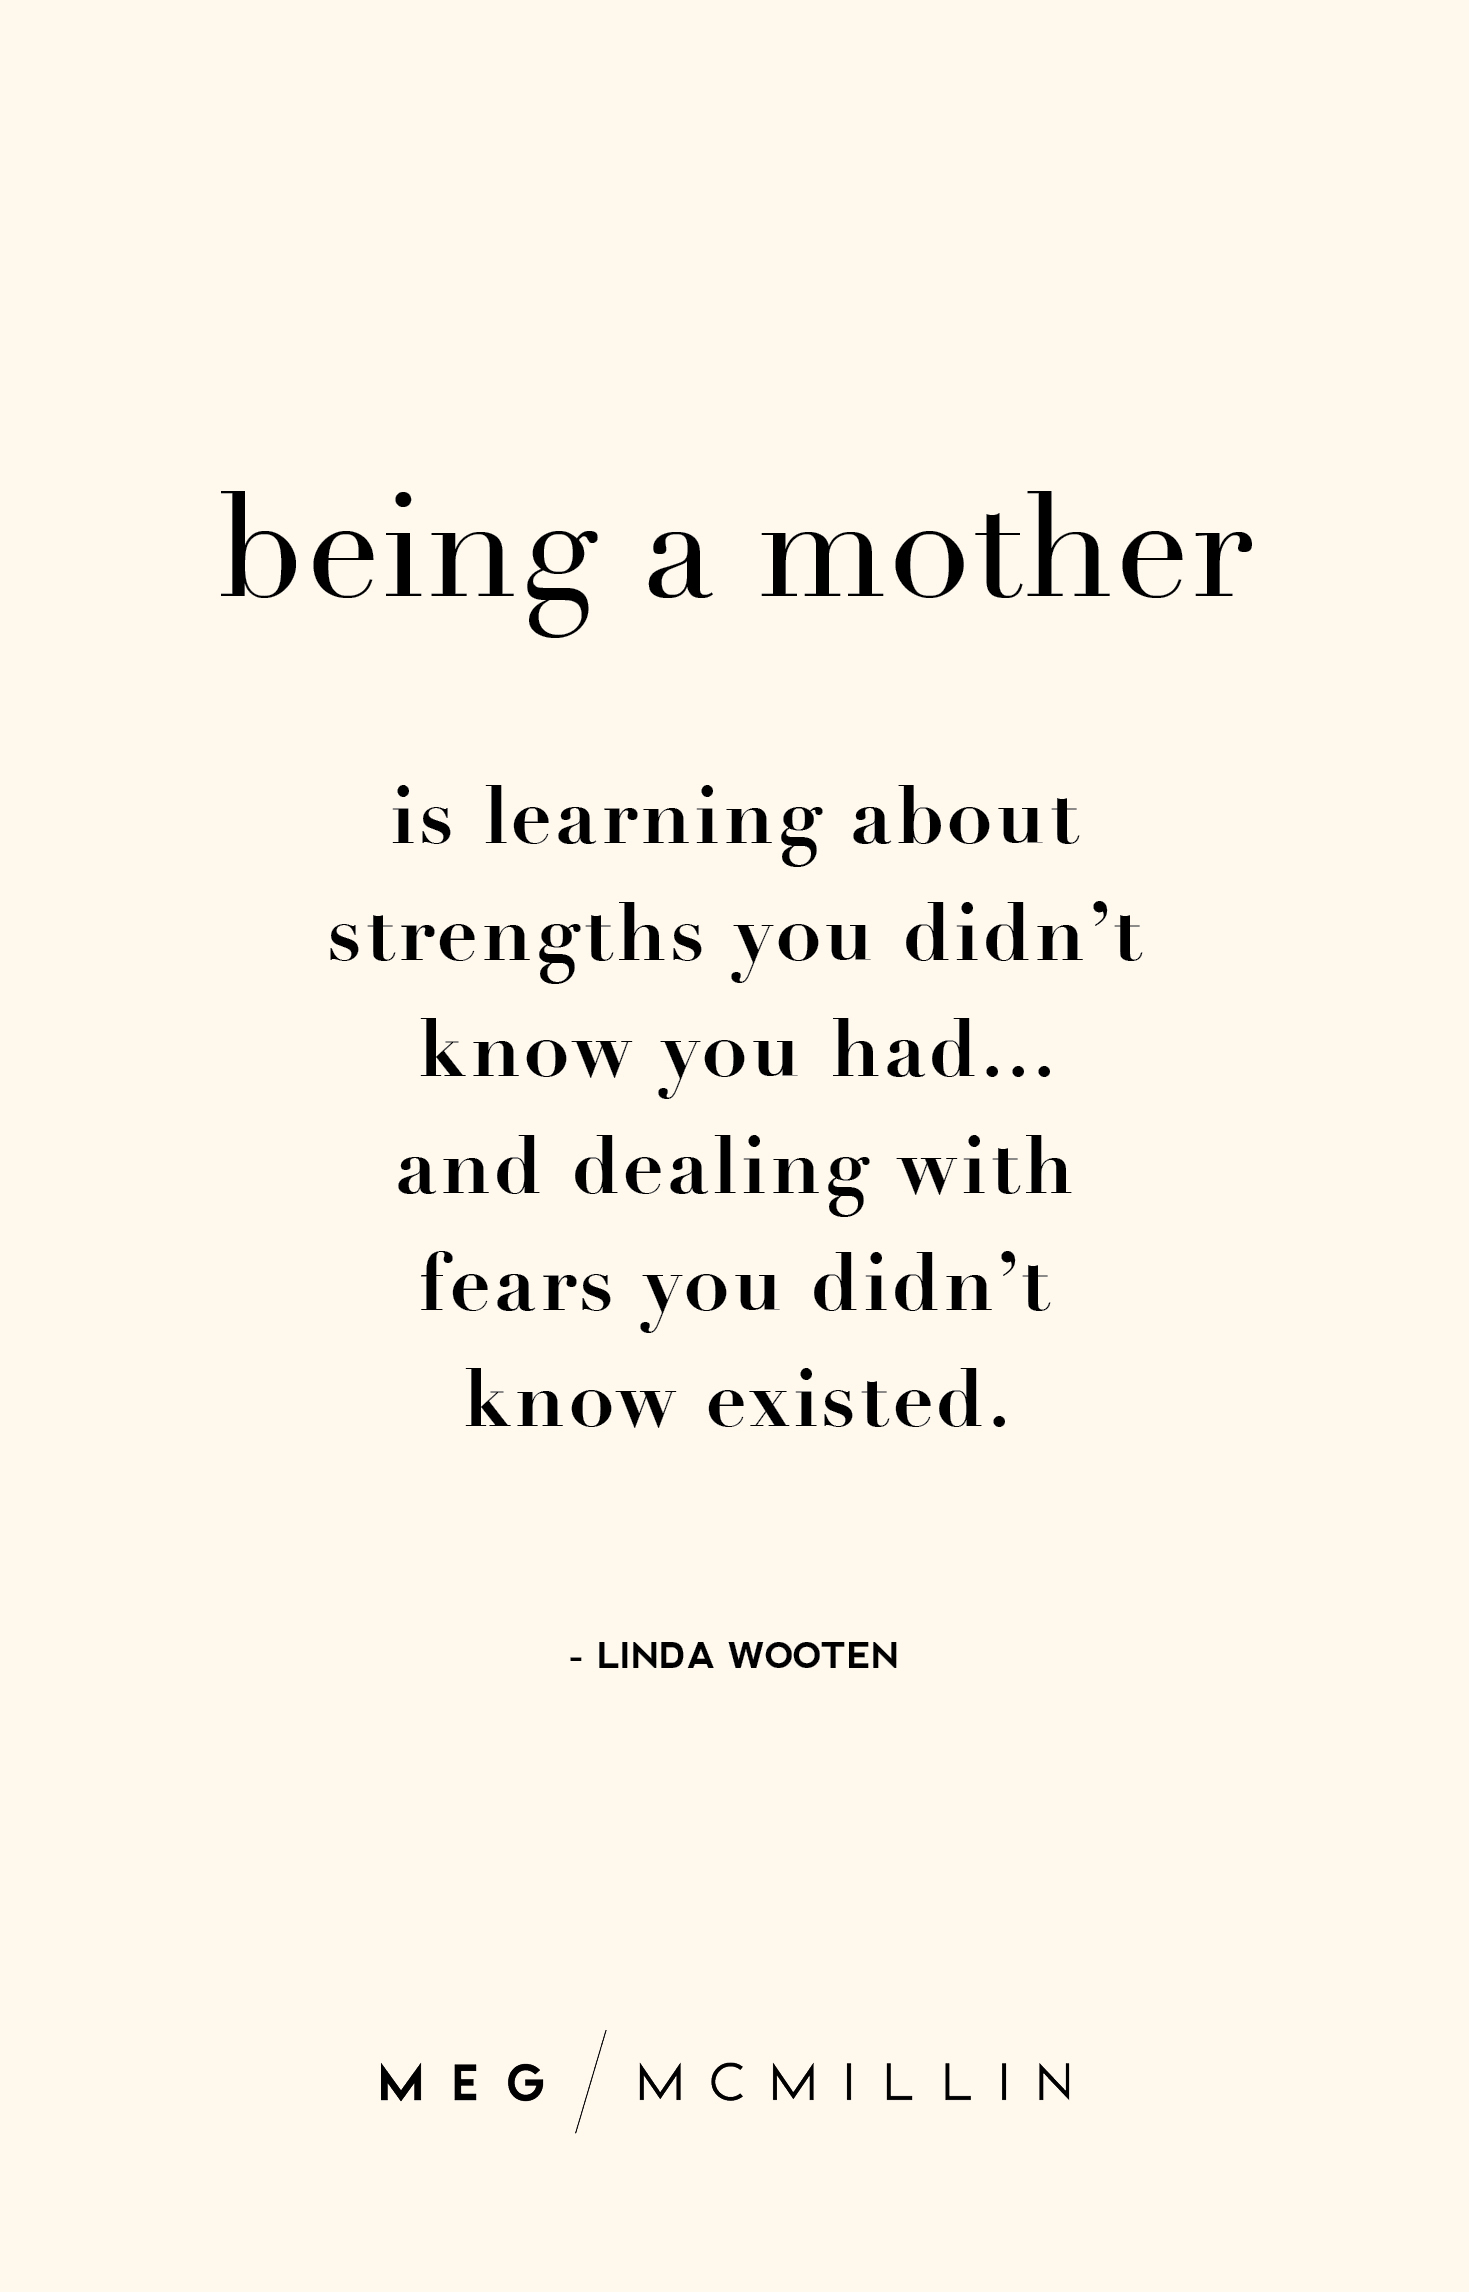 10 inspiring mom quotes to get you through a tough day – Meg McMillin